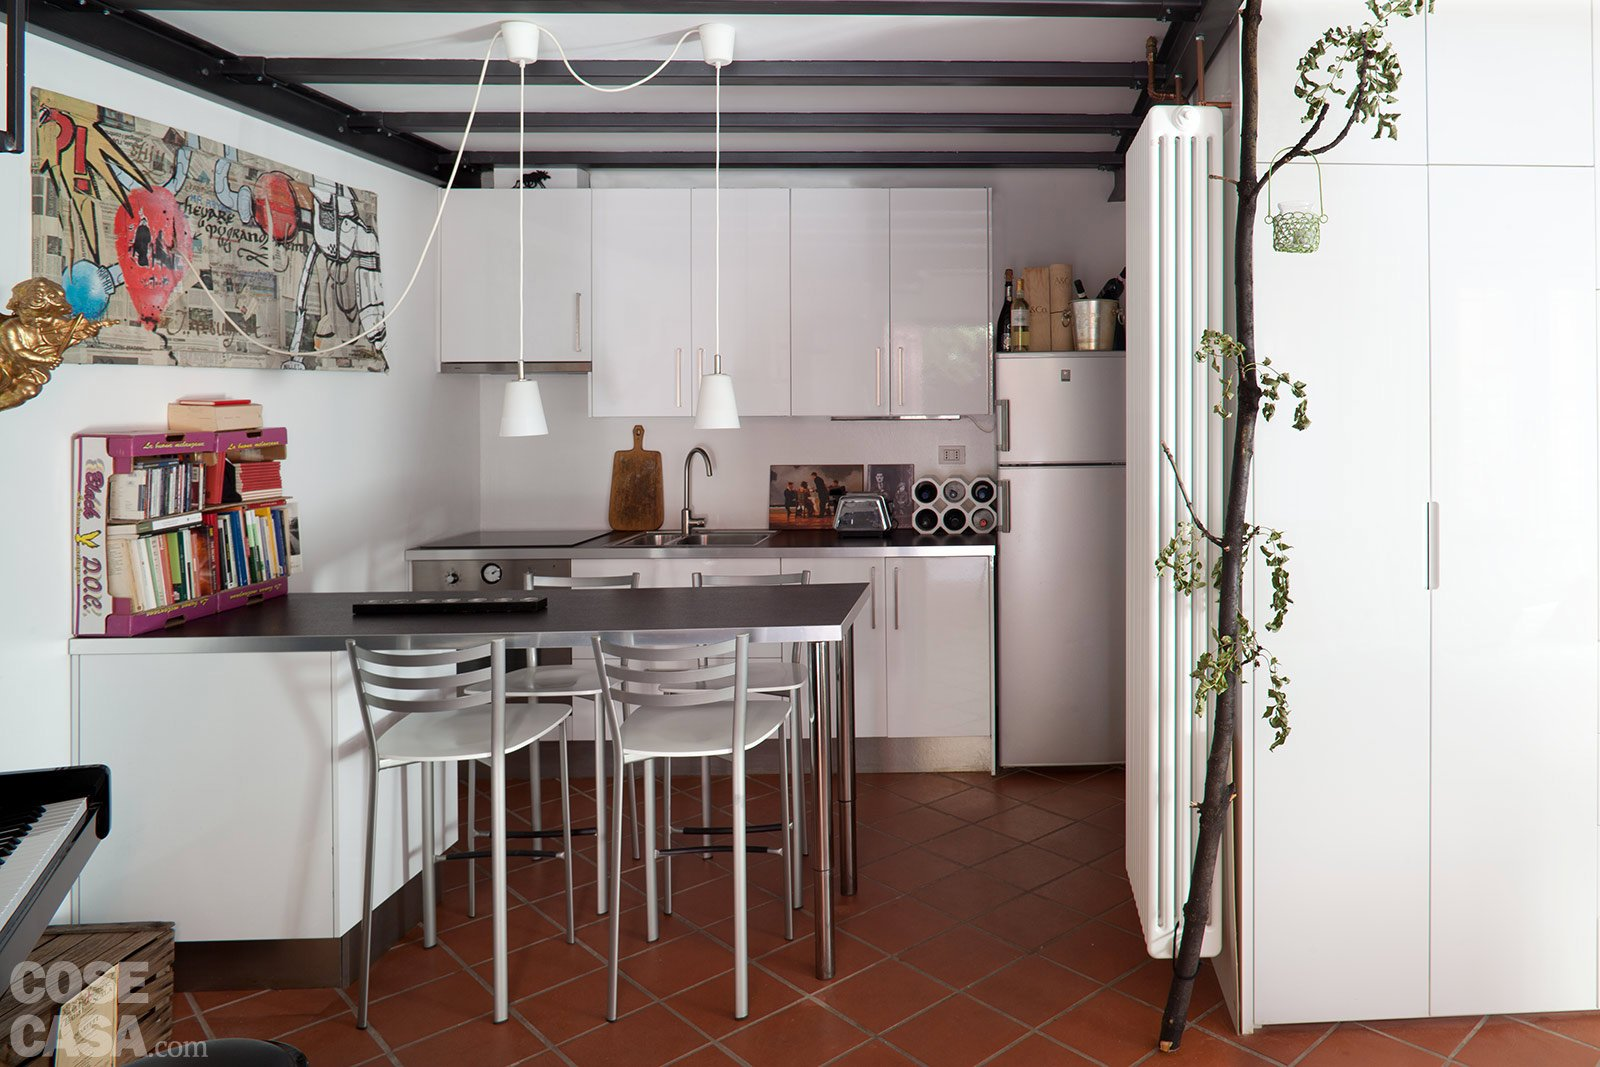 Casabook immobiliare da box a casa un incredibile for Arredare un corridoio ikea